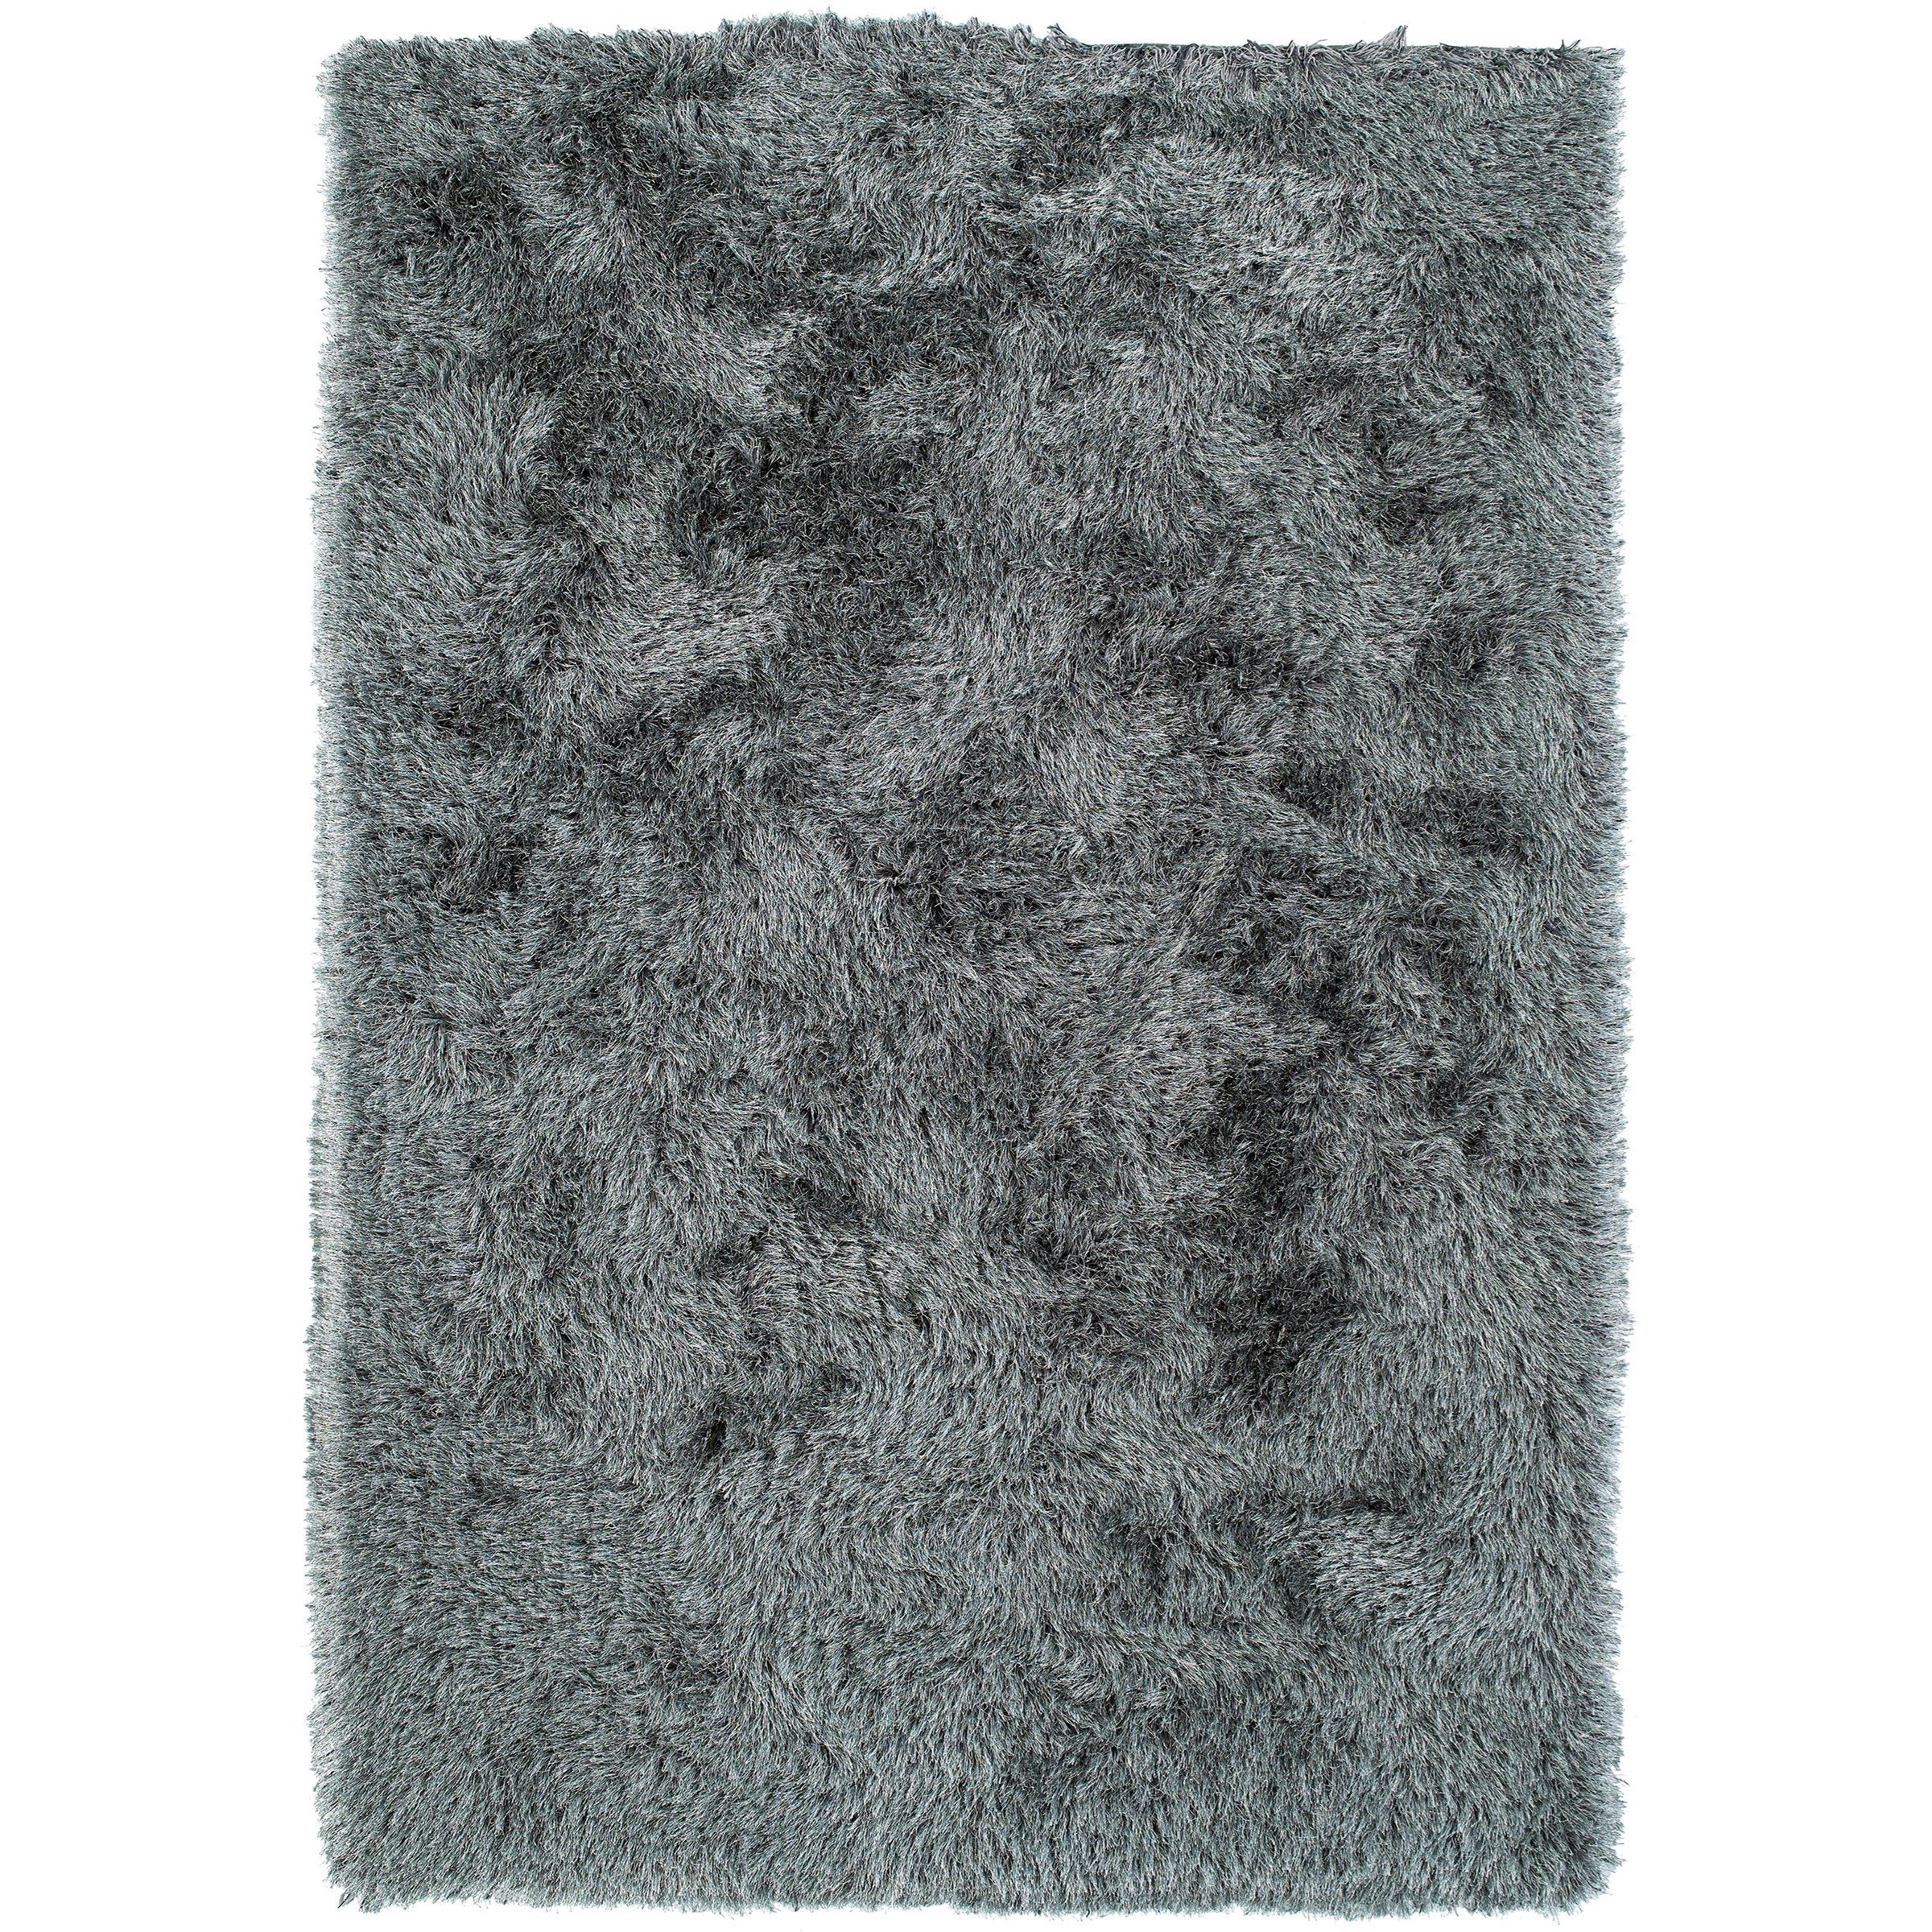 Pewter 8'X10' Area Rug